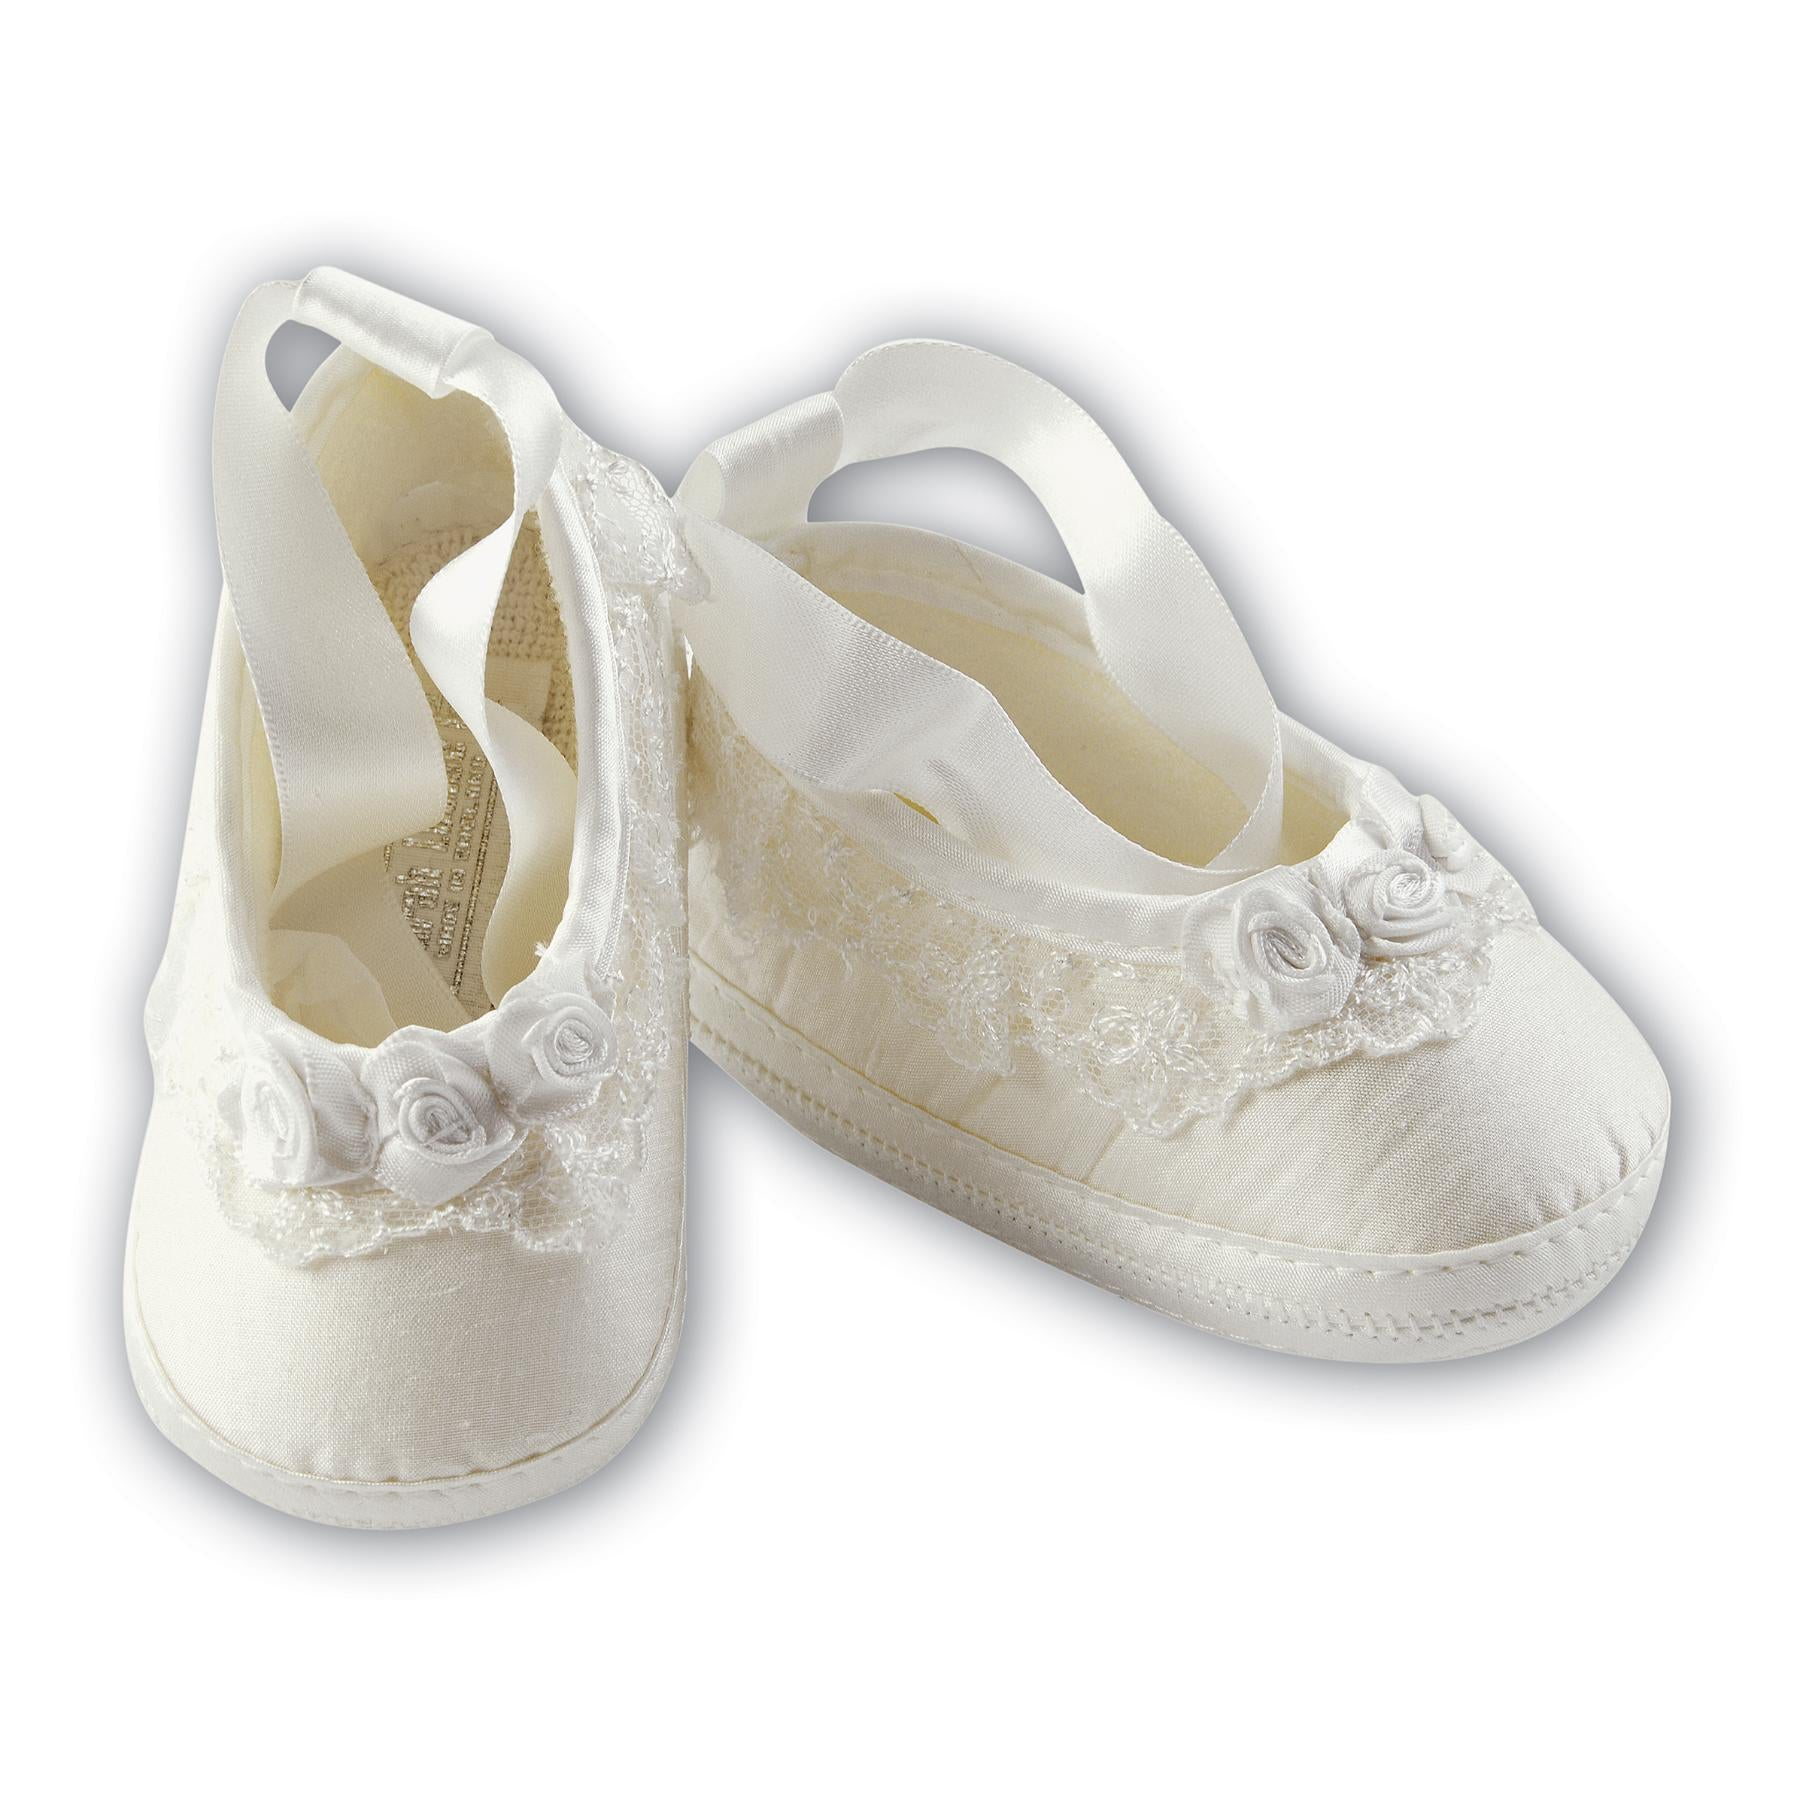 SARAH LOUISE CHRISTENING SHOES 4434 I